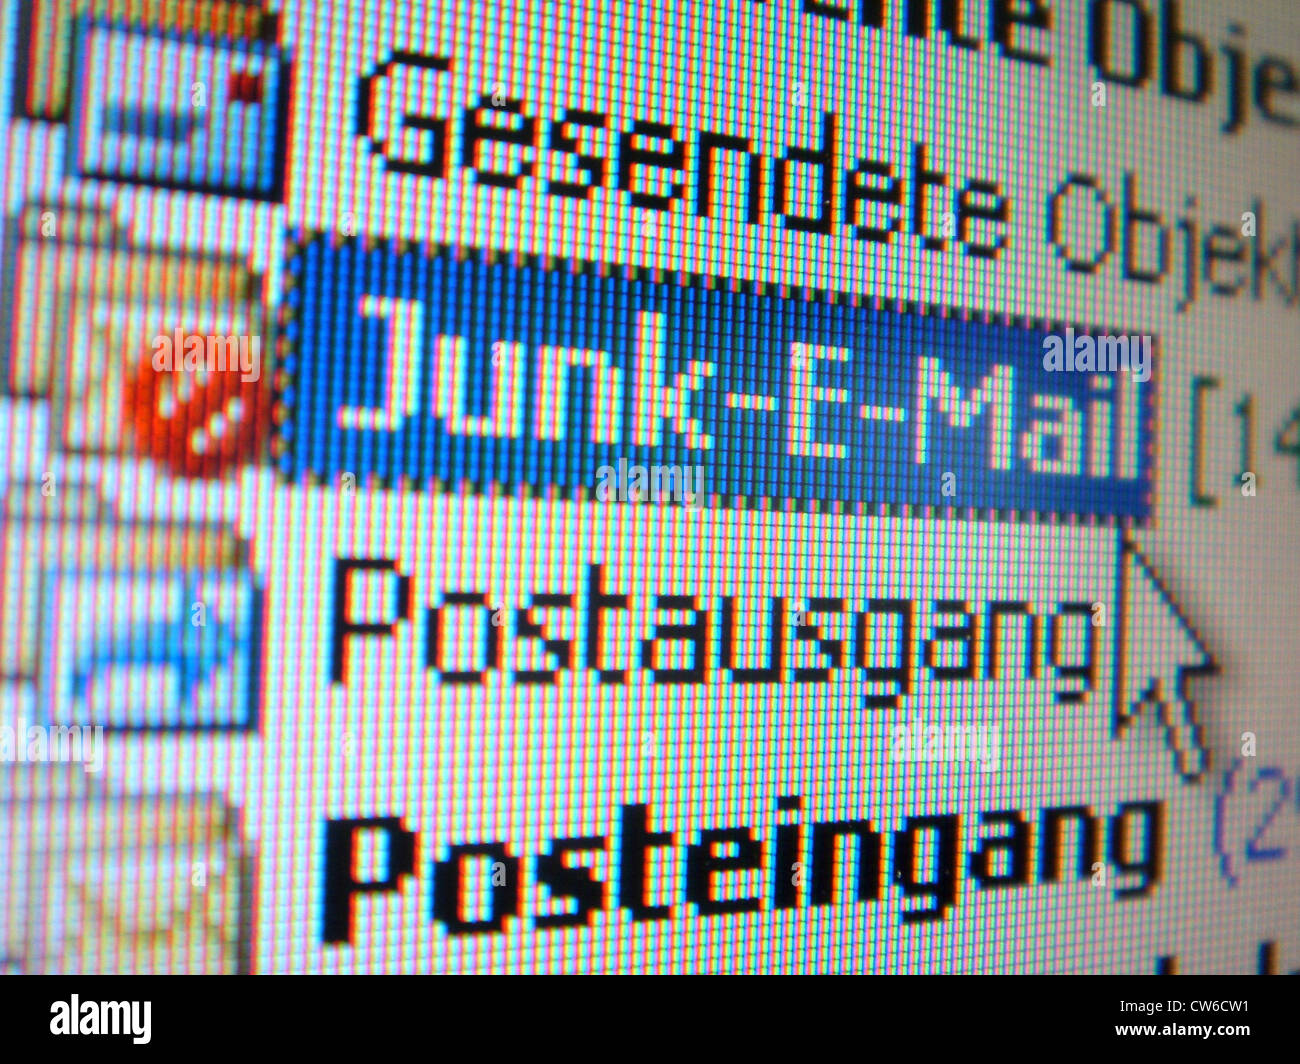 Undesirable junk mail - Stock Image